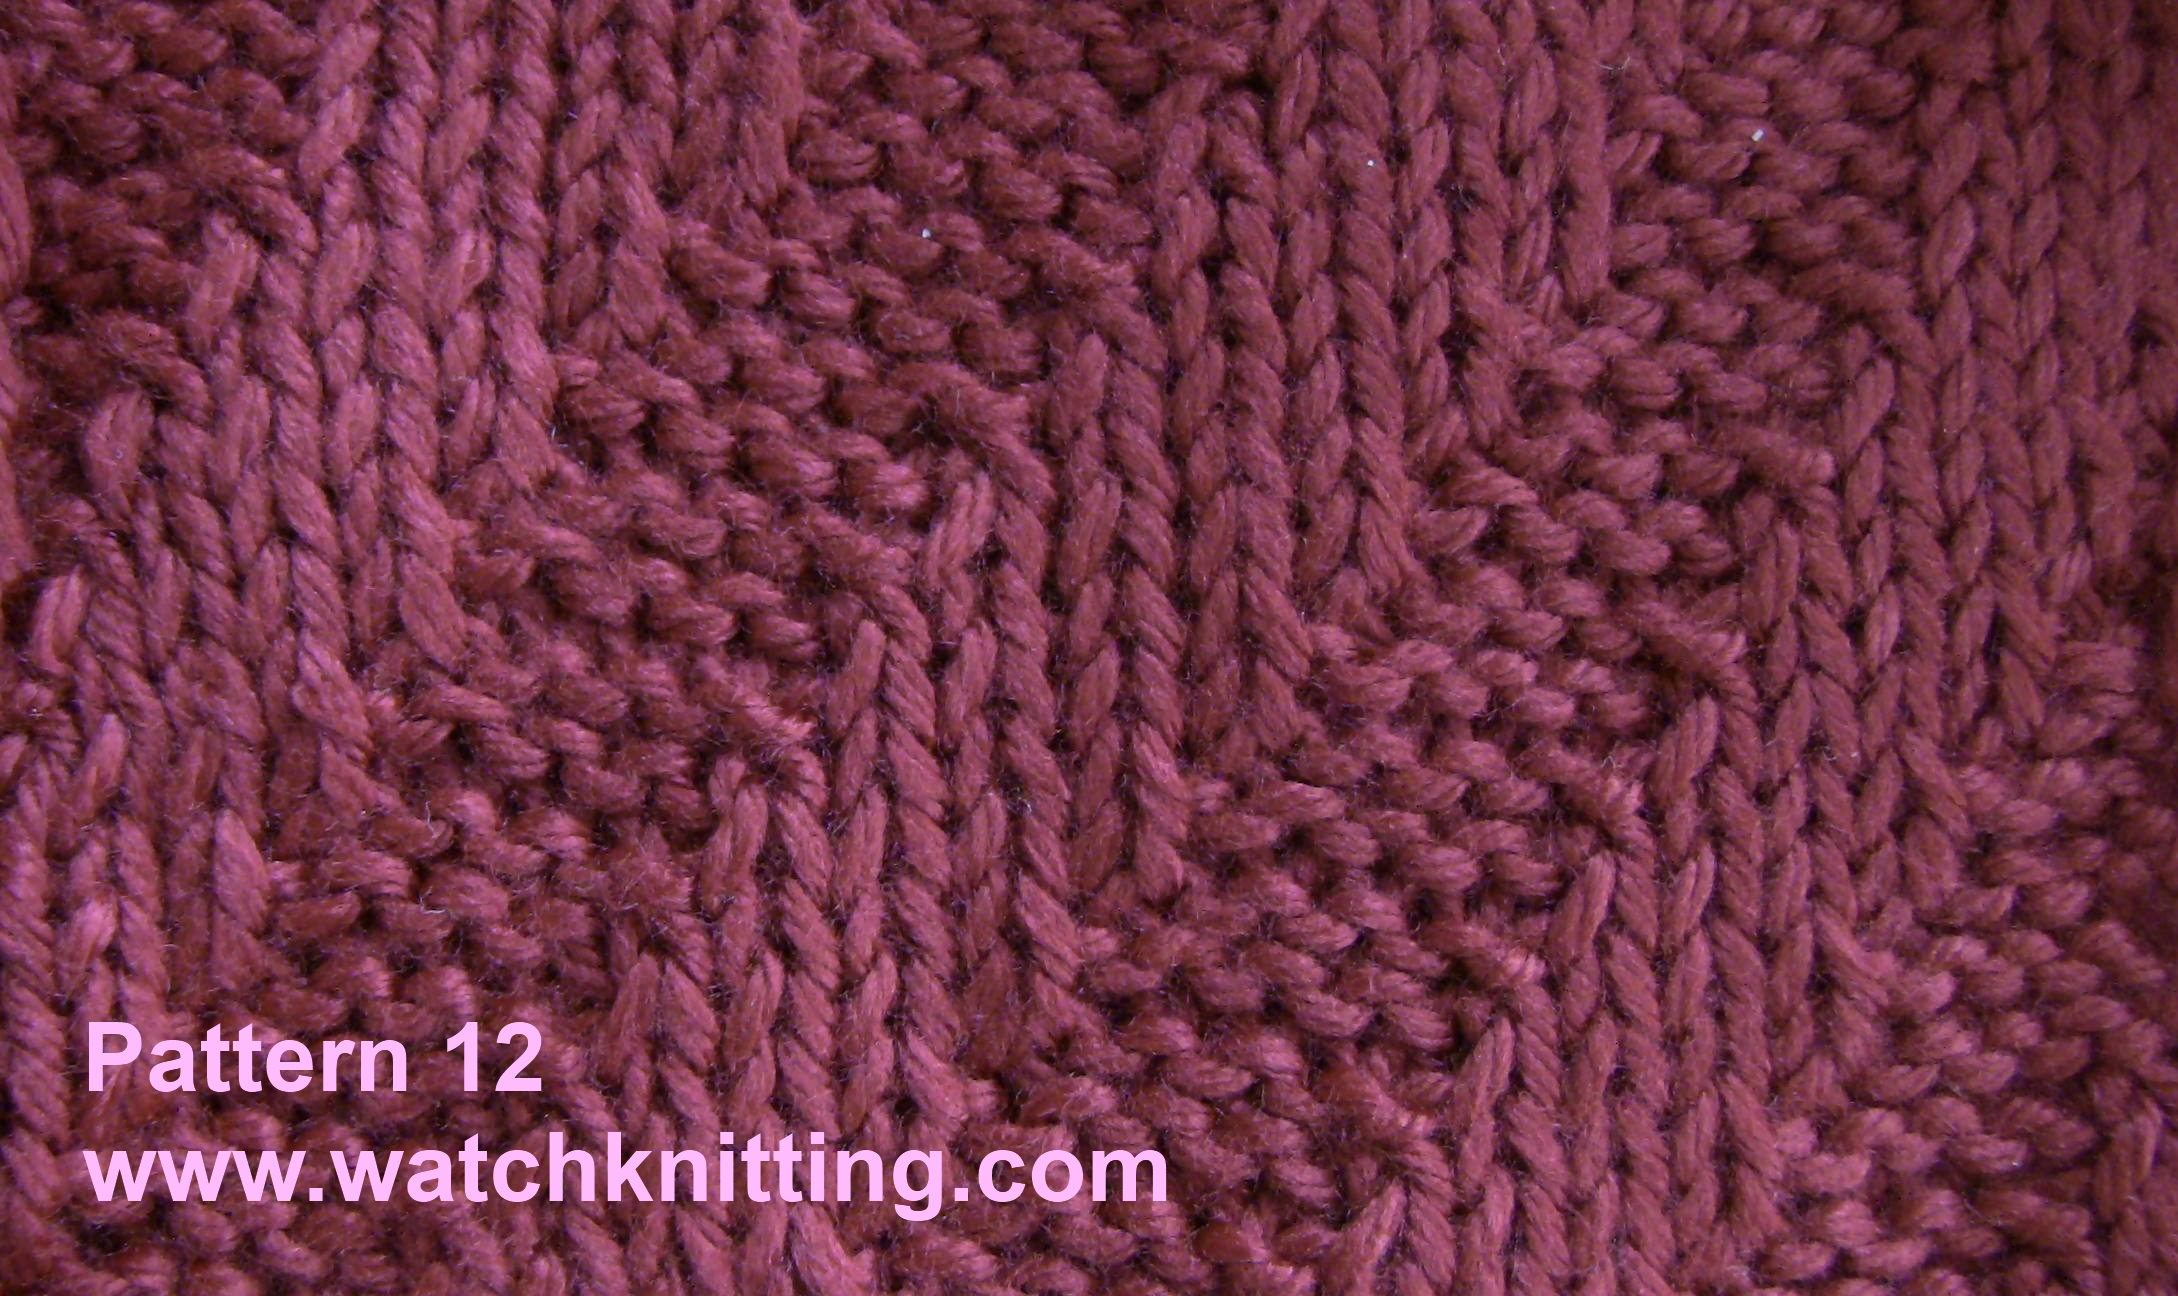 Design Knitting Patterns : Basic Knitting Stitches Watch knitting